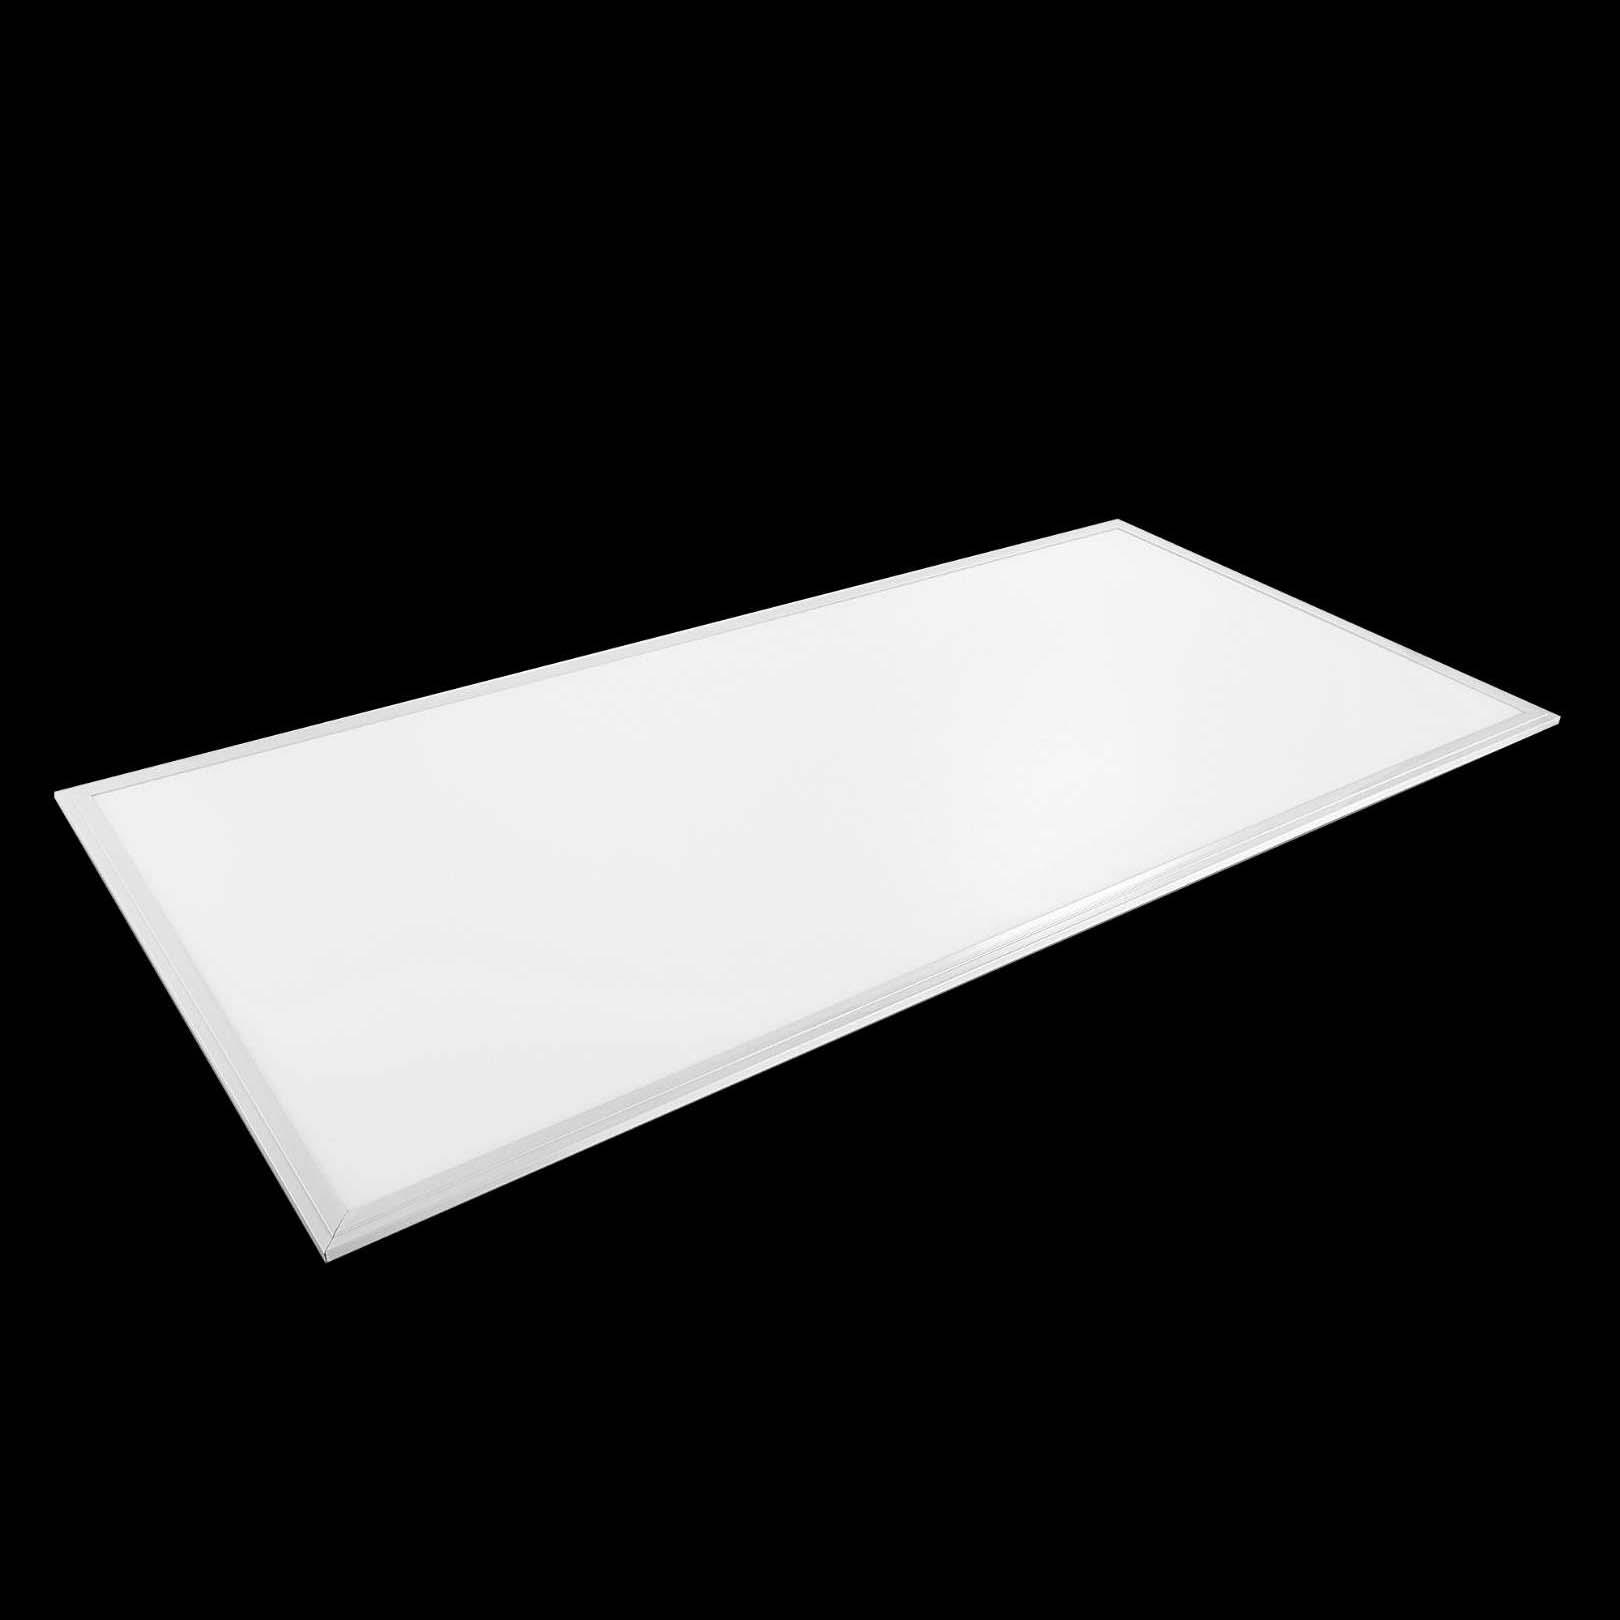 led ceiling panel 1200x300 for residence, library, hospital